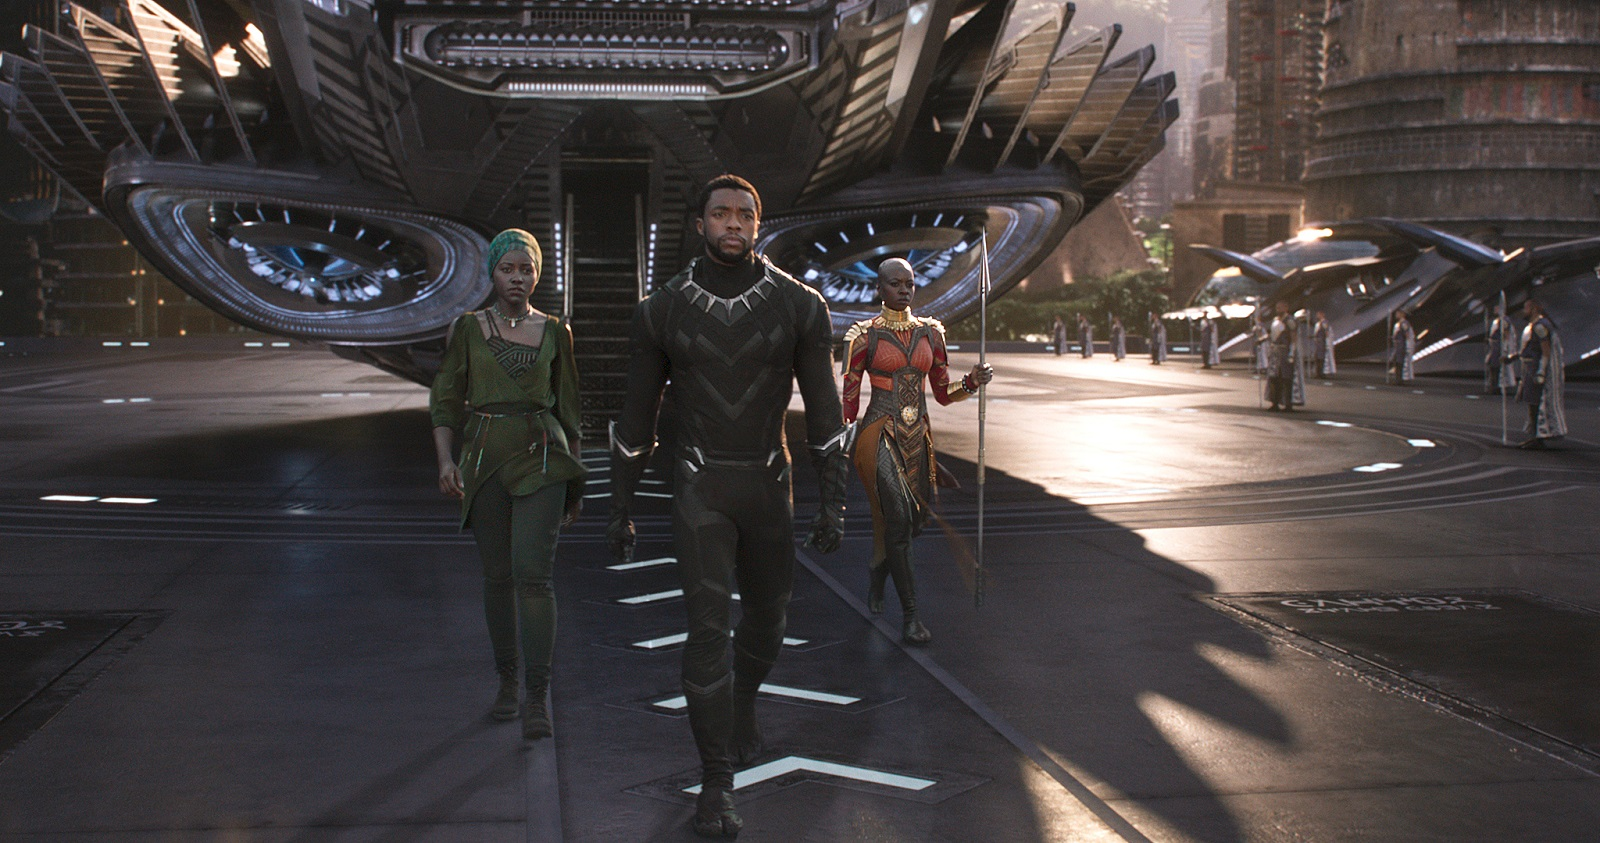 This leaker knows who Marvel's next Black Panther will be